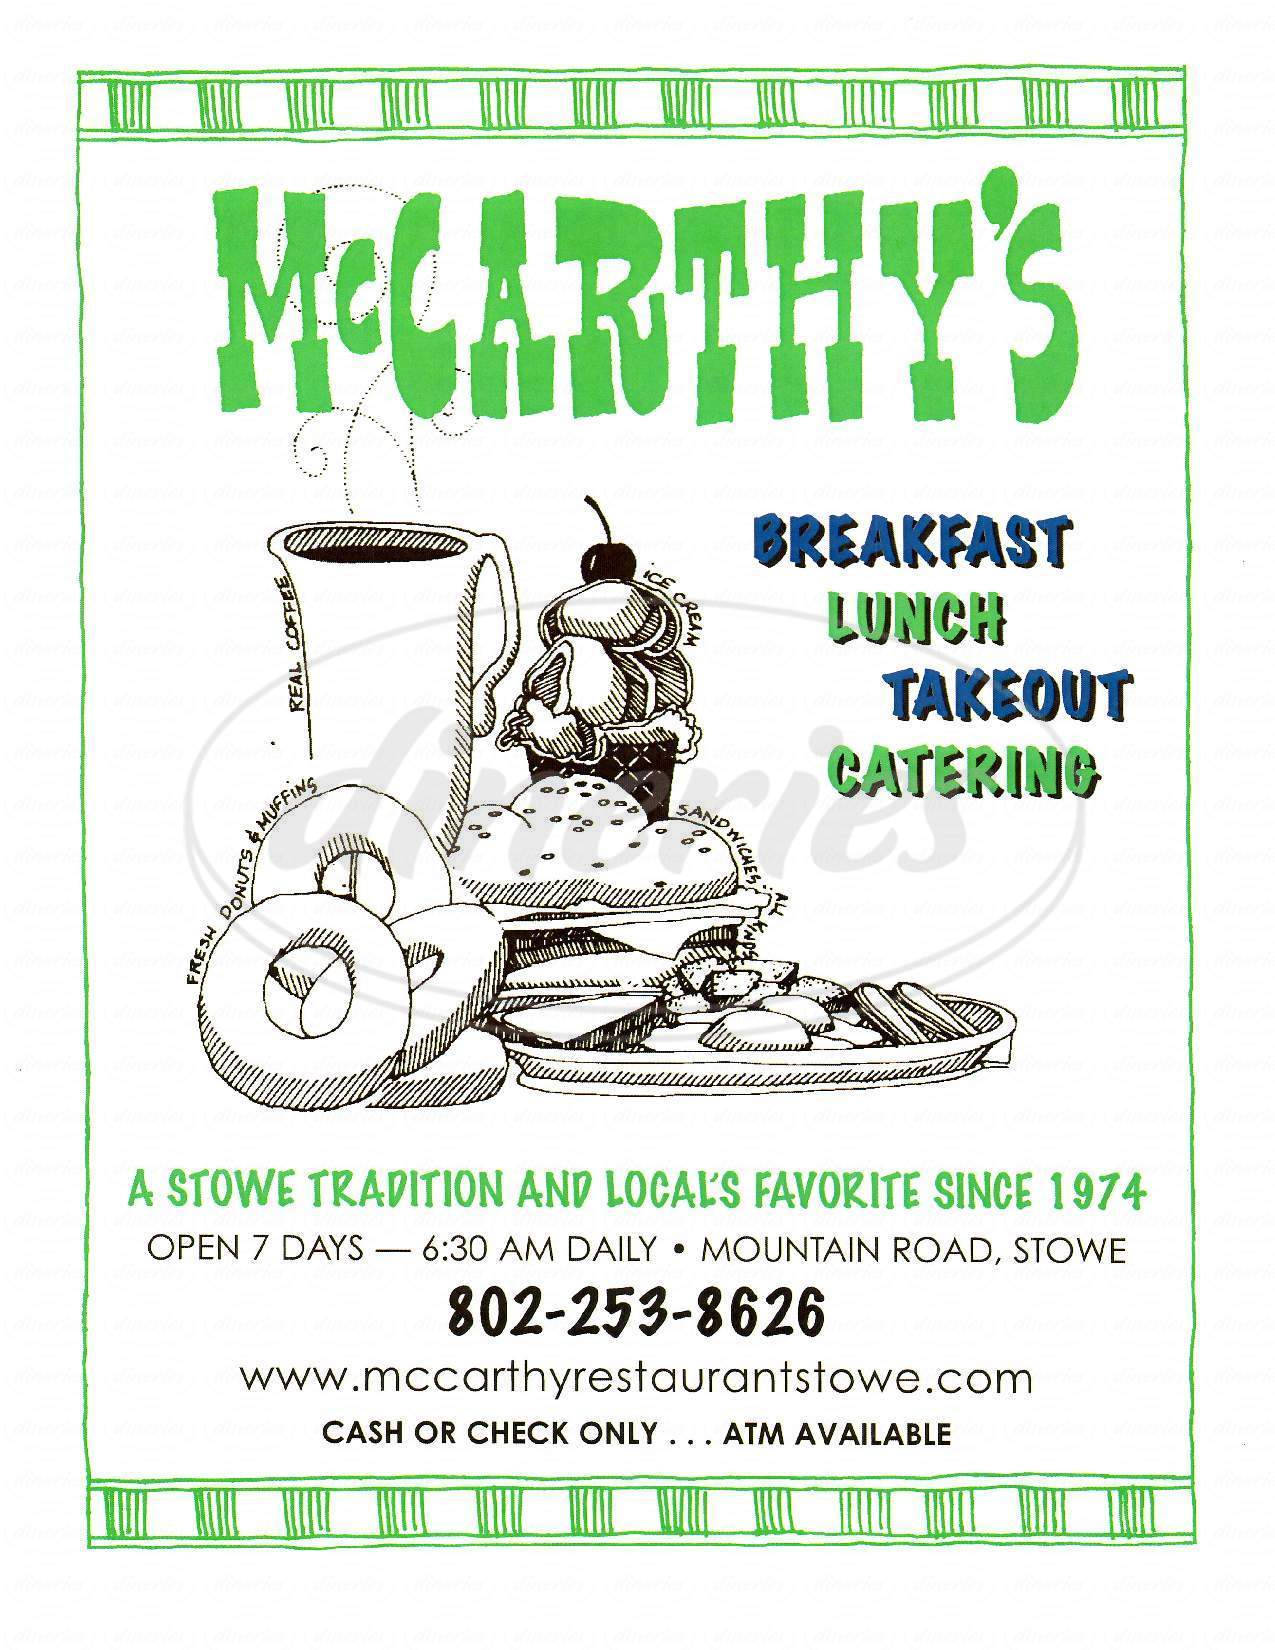 menu for McCarthy's Restaurant